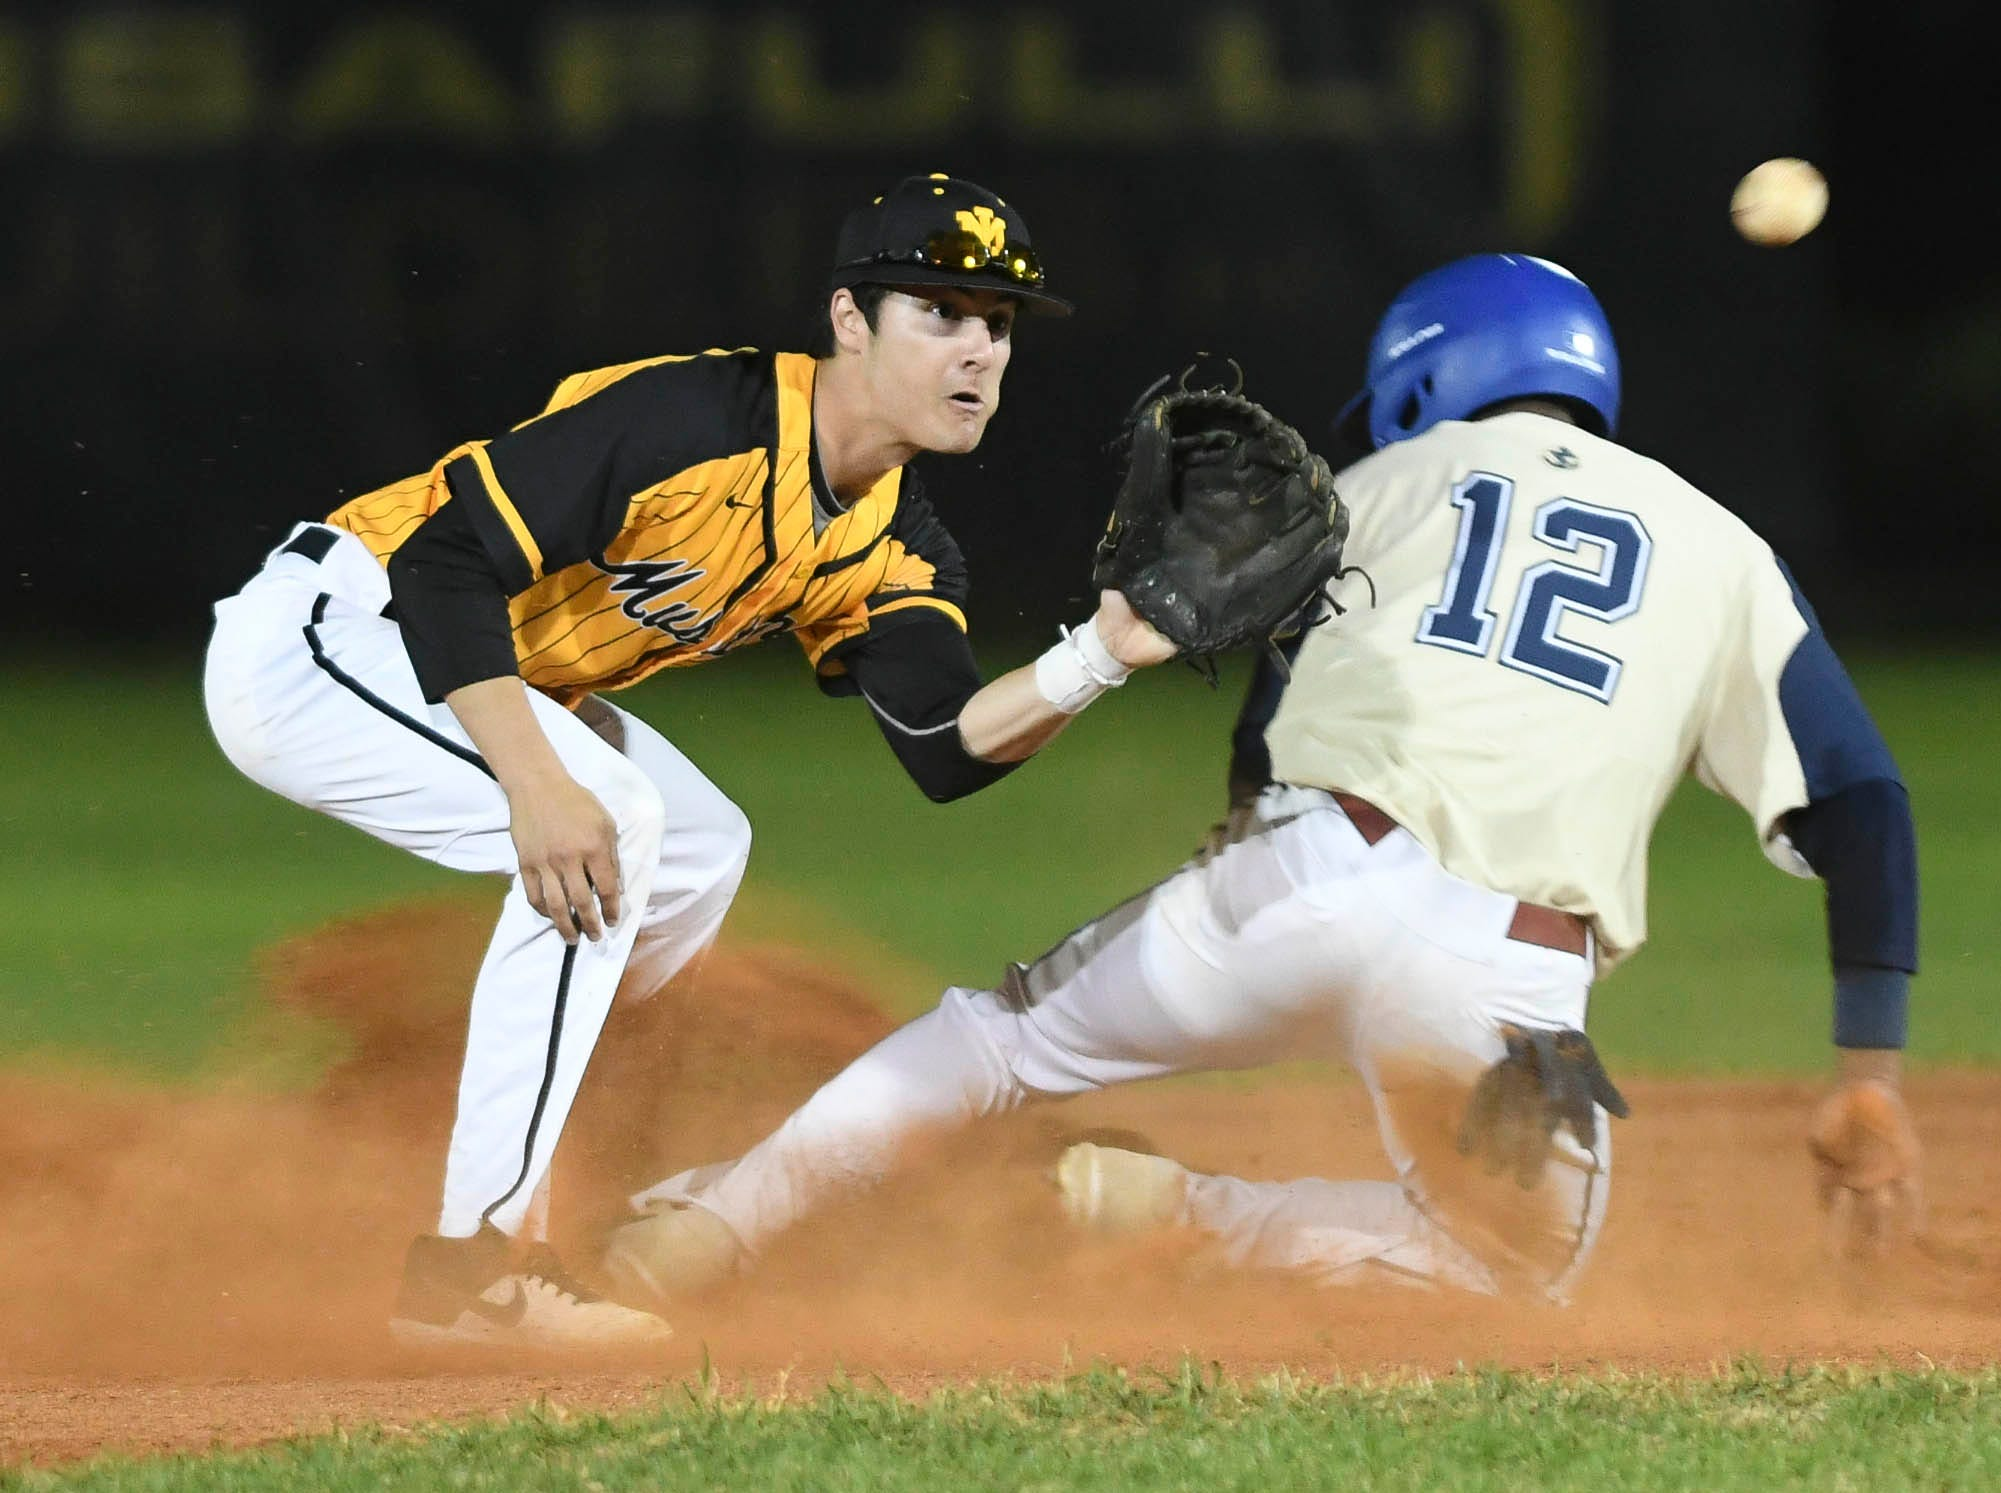 The ball arrives too late for Merritt Island's Kyle  Jackson to tag out DeAmez Ross of Eau Gallie during Tuesday's game in Merritt Island